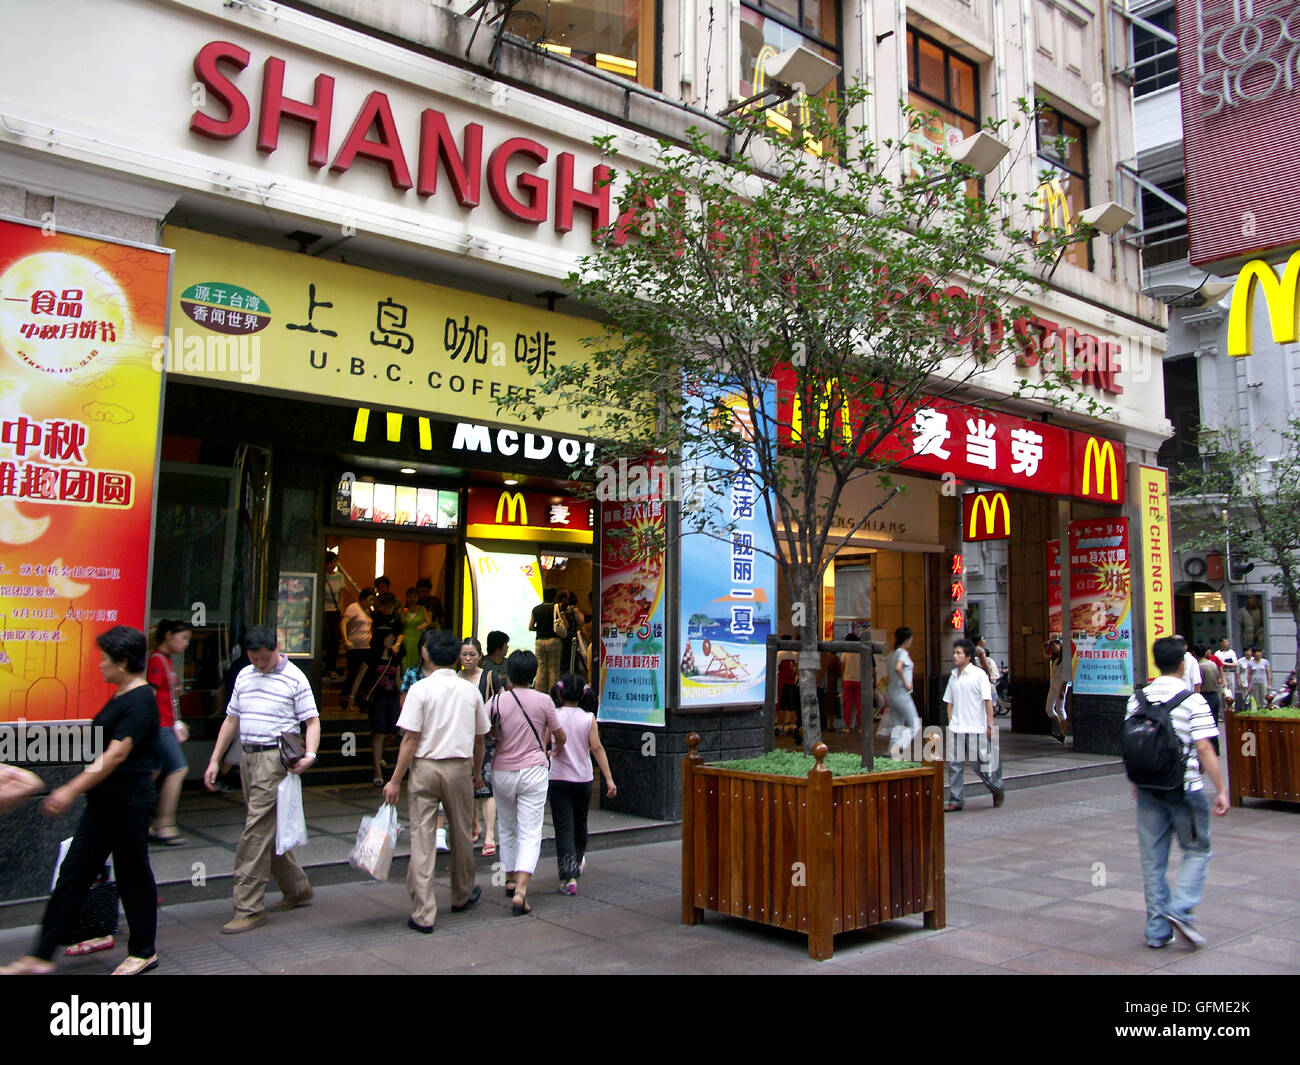 New Fast Food Franchises Such As Macdonalds Restaurant